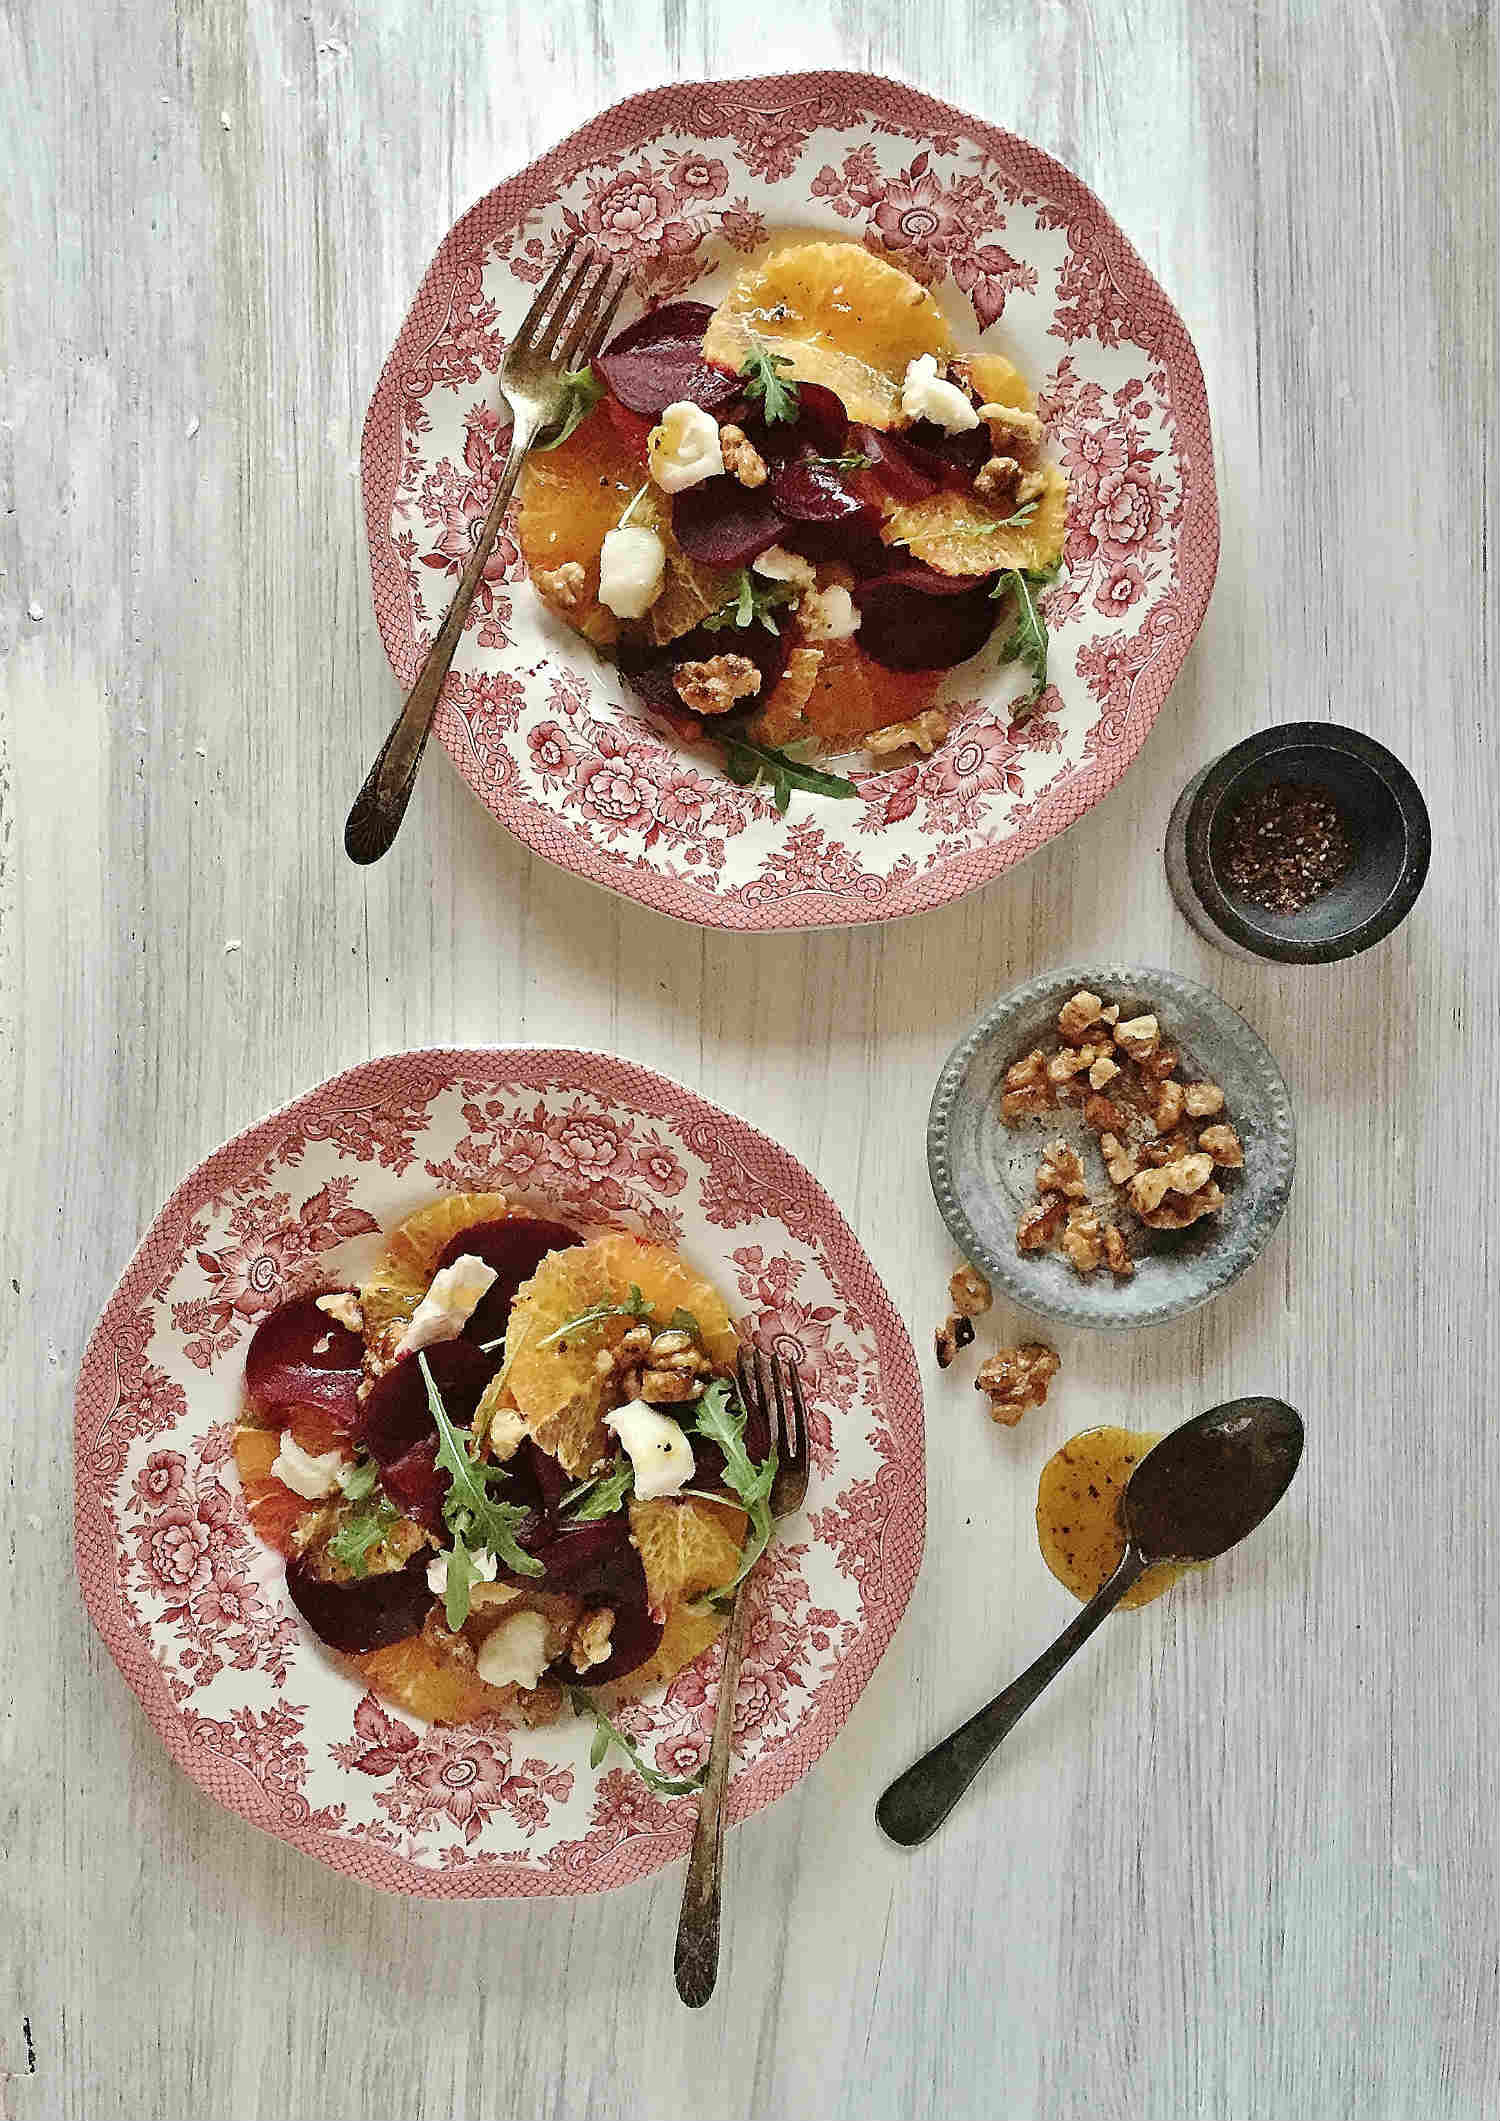 Honey-Citrus Redbeet & Orange Carpaccio with Goat Cheese